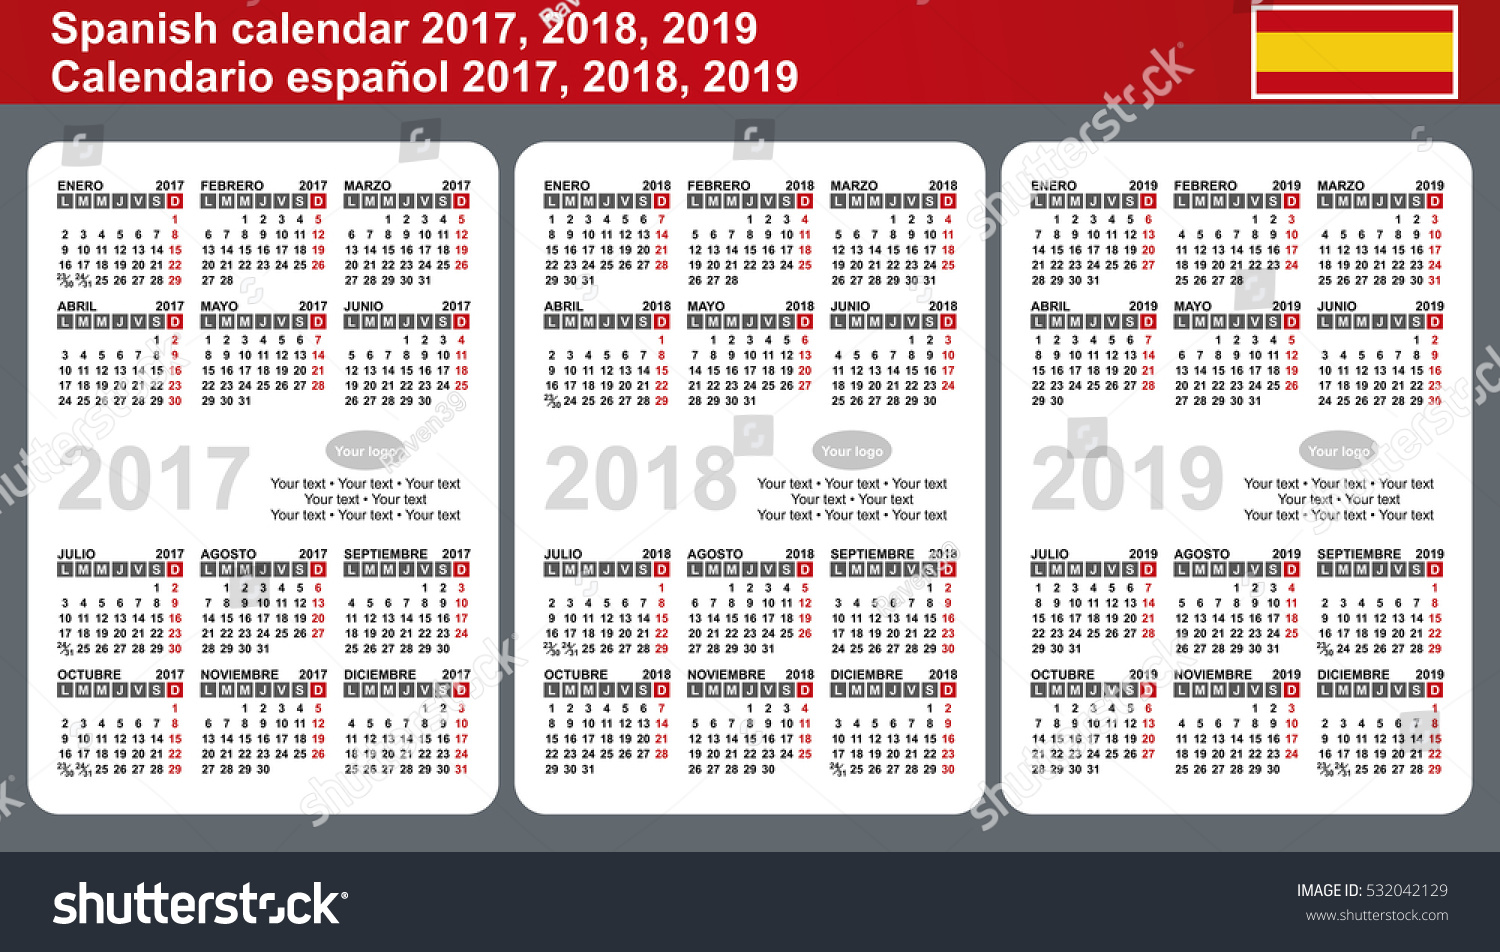 spanish calendar 2017 2018 2019 vector template with place for logo and simple